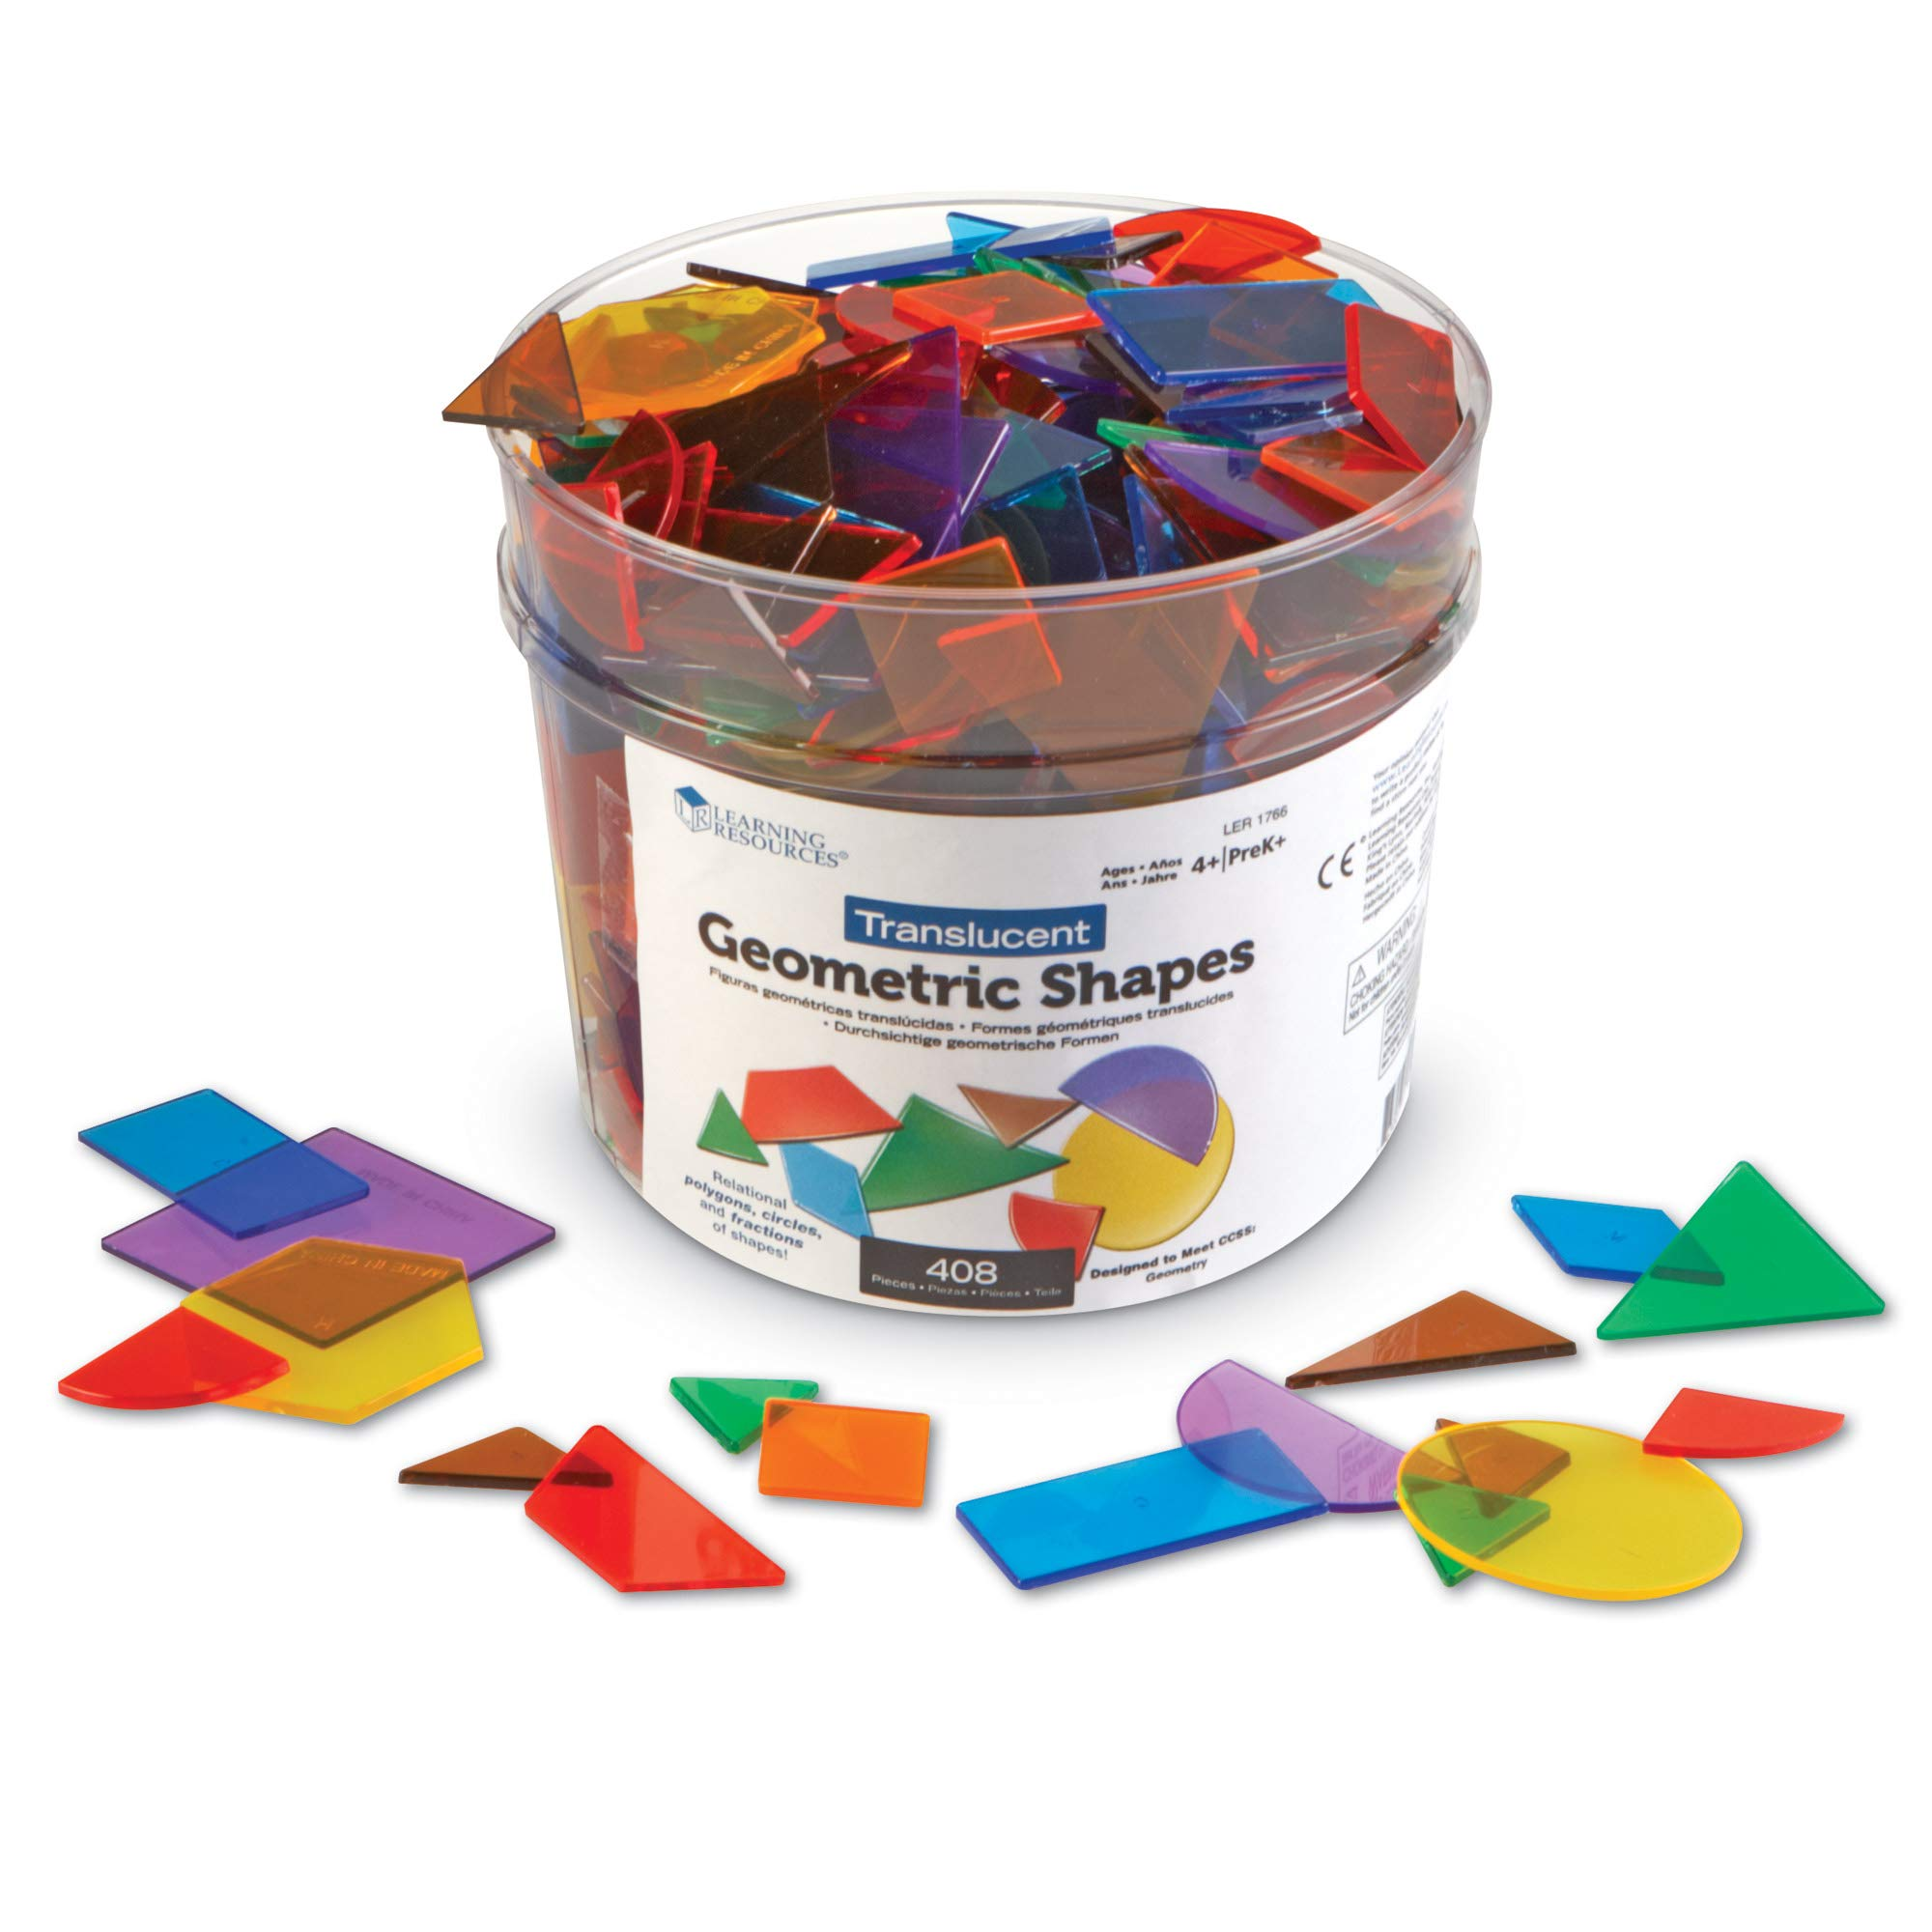 Learning Resources Translucent Geometric Shapes, Early Geometry Skills, Classroom Accessories, Teacher Aids, 408 Pieces, Grades Pre-K+, Ages 4+ by Learning Resources